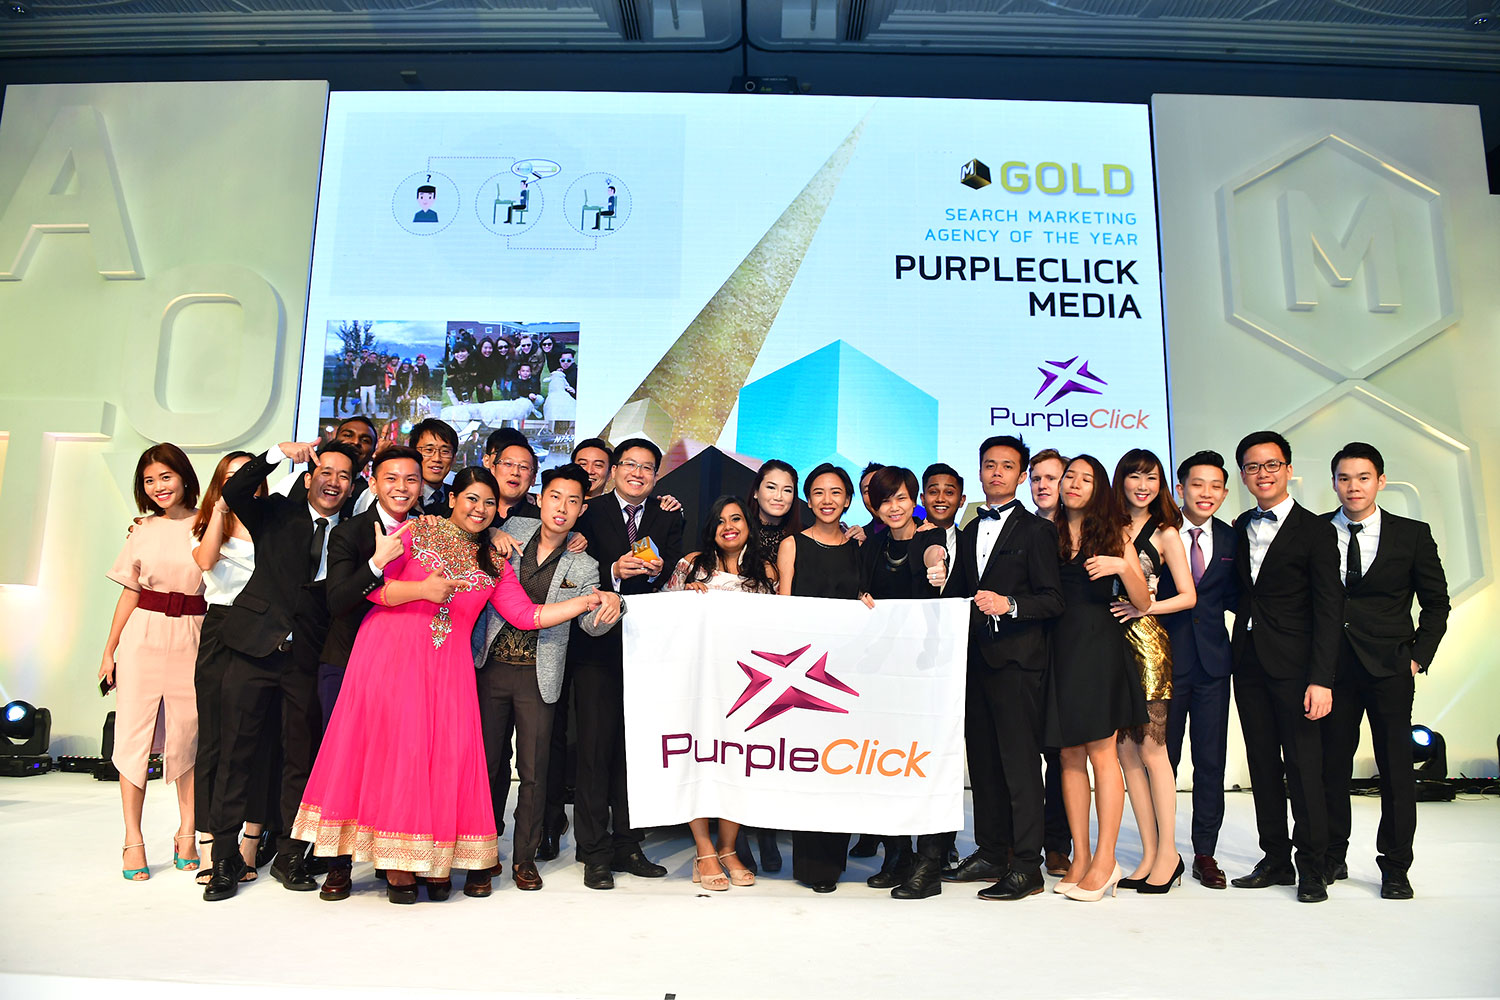 PurpleClick Media- Search Marketing Agency of the Year 2017